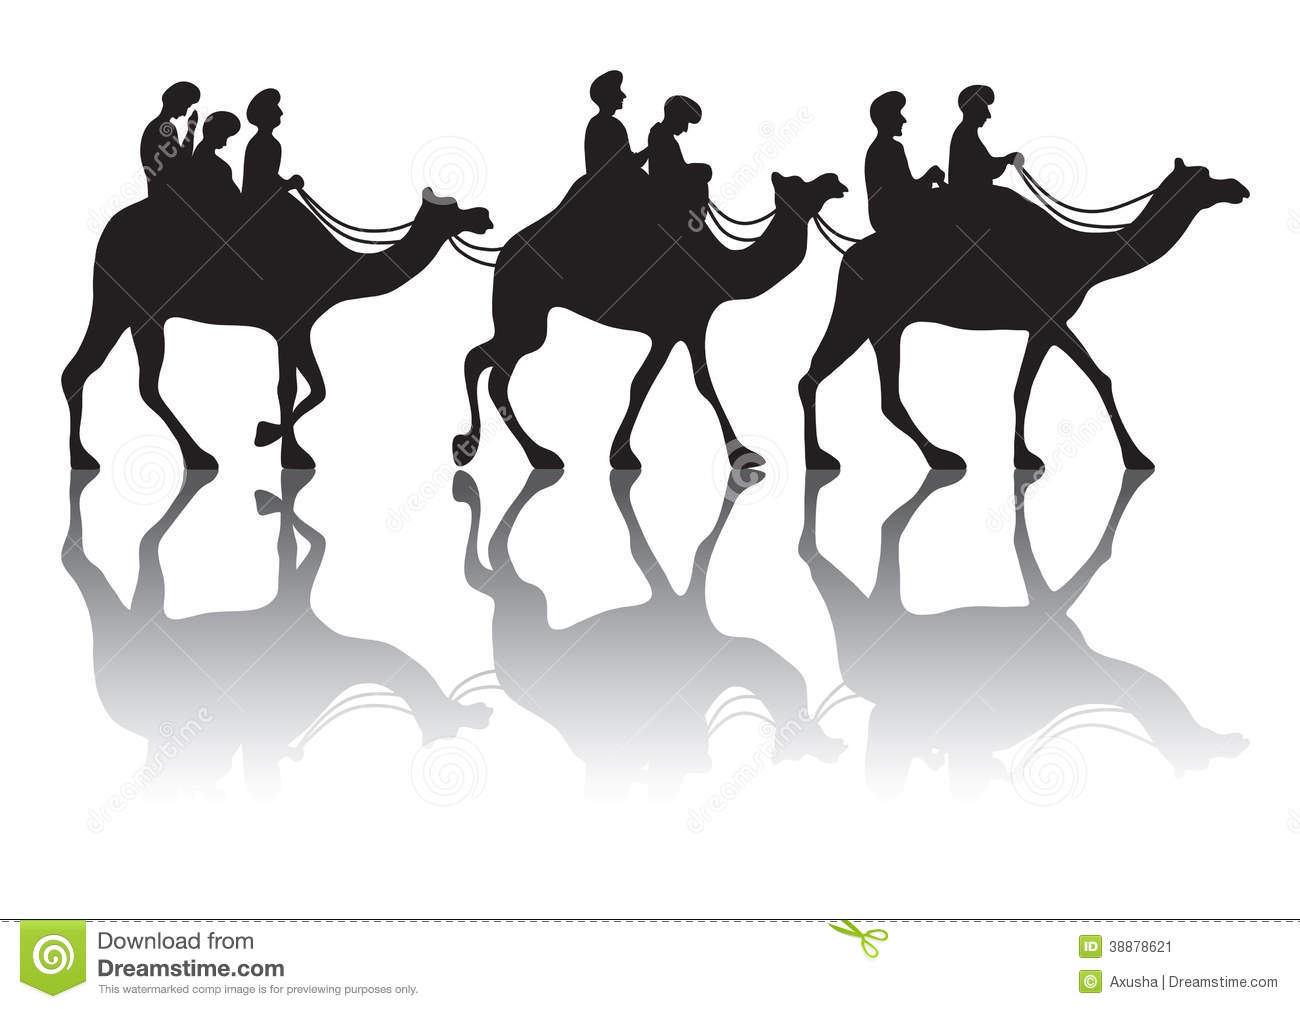 Camel s caravan stock vector. Illustration of caravan.